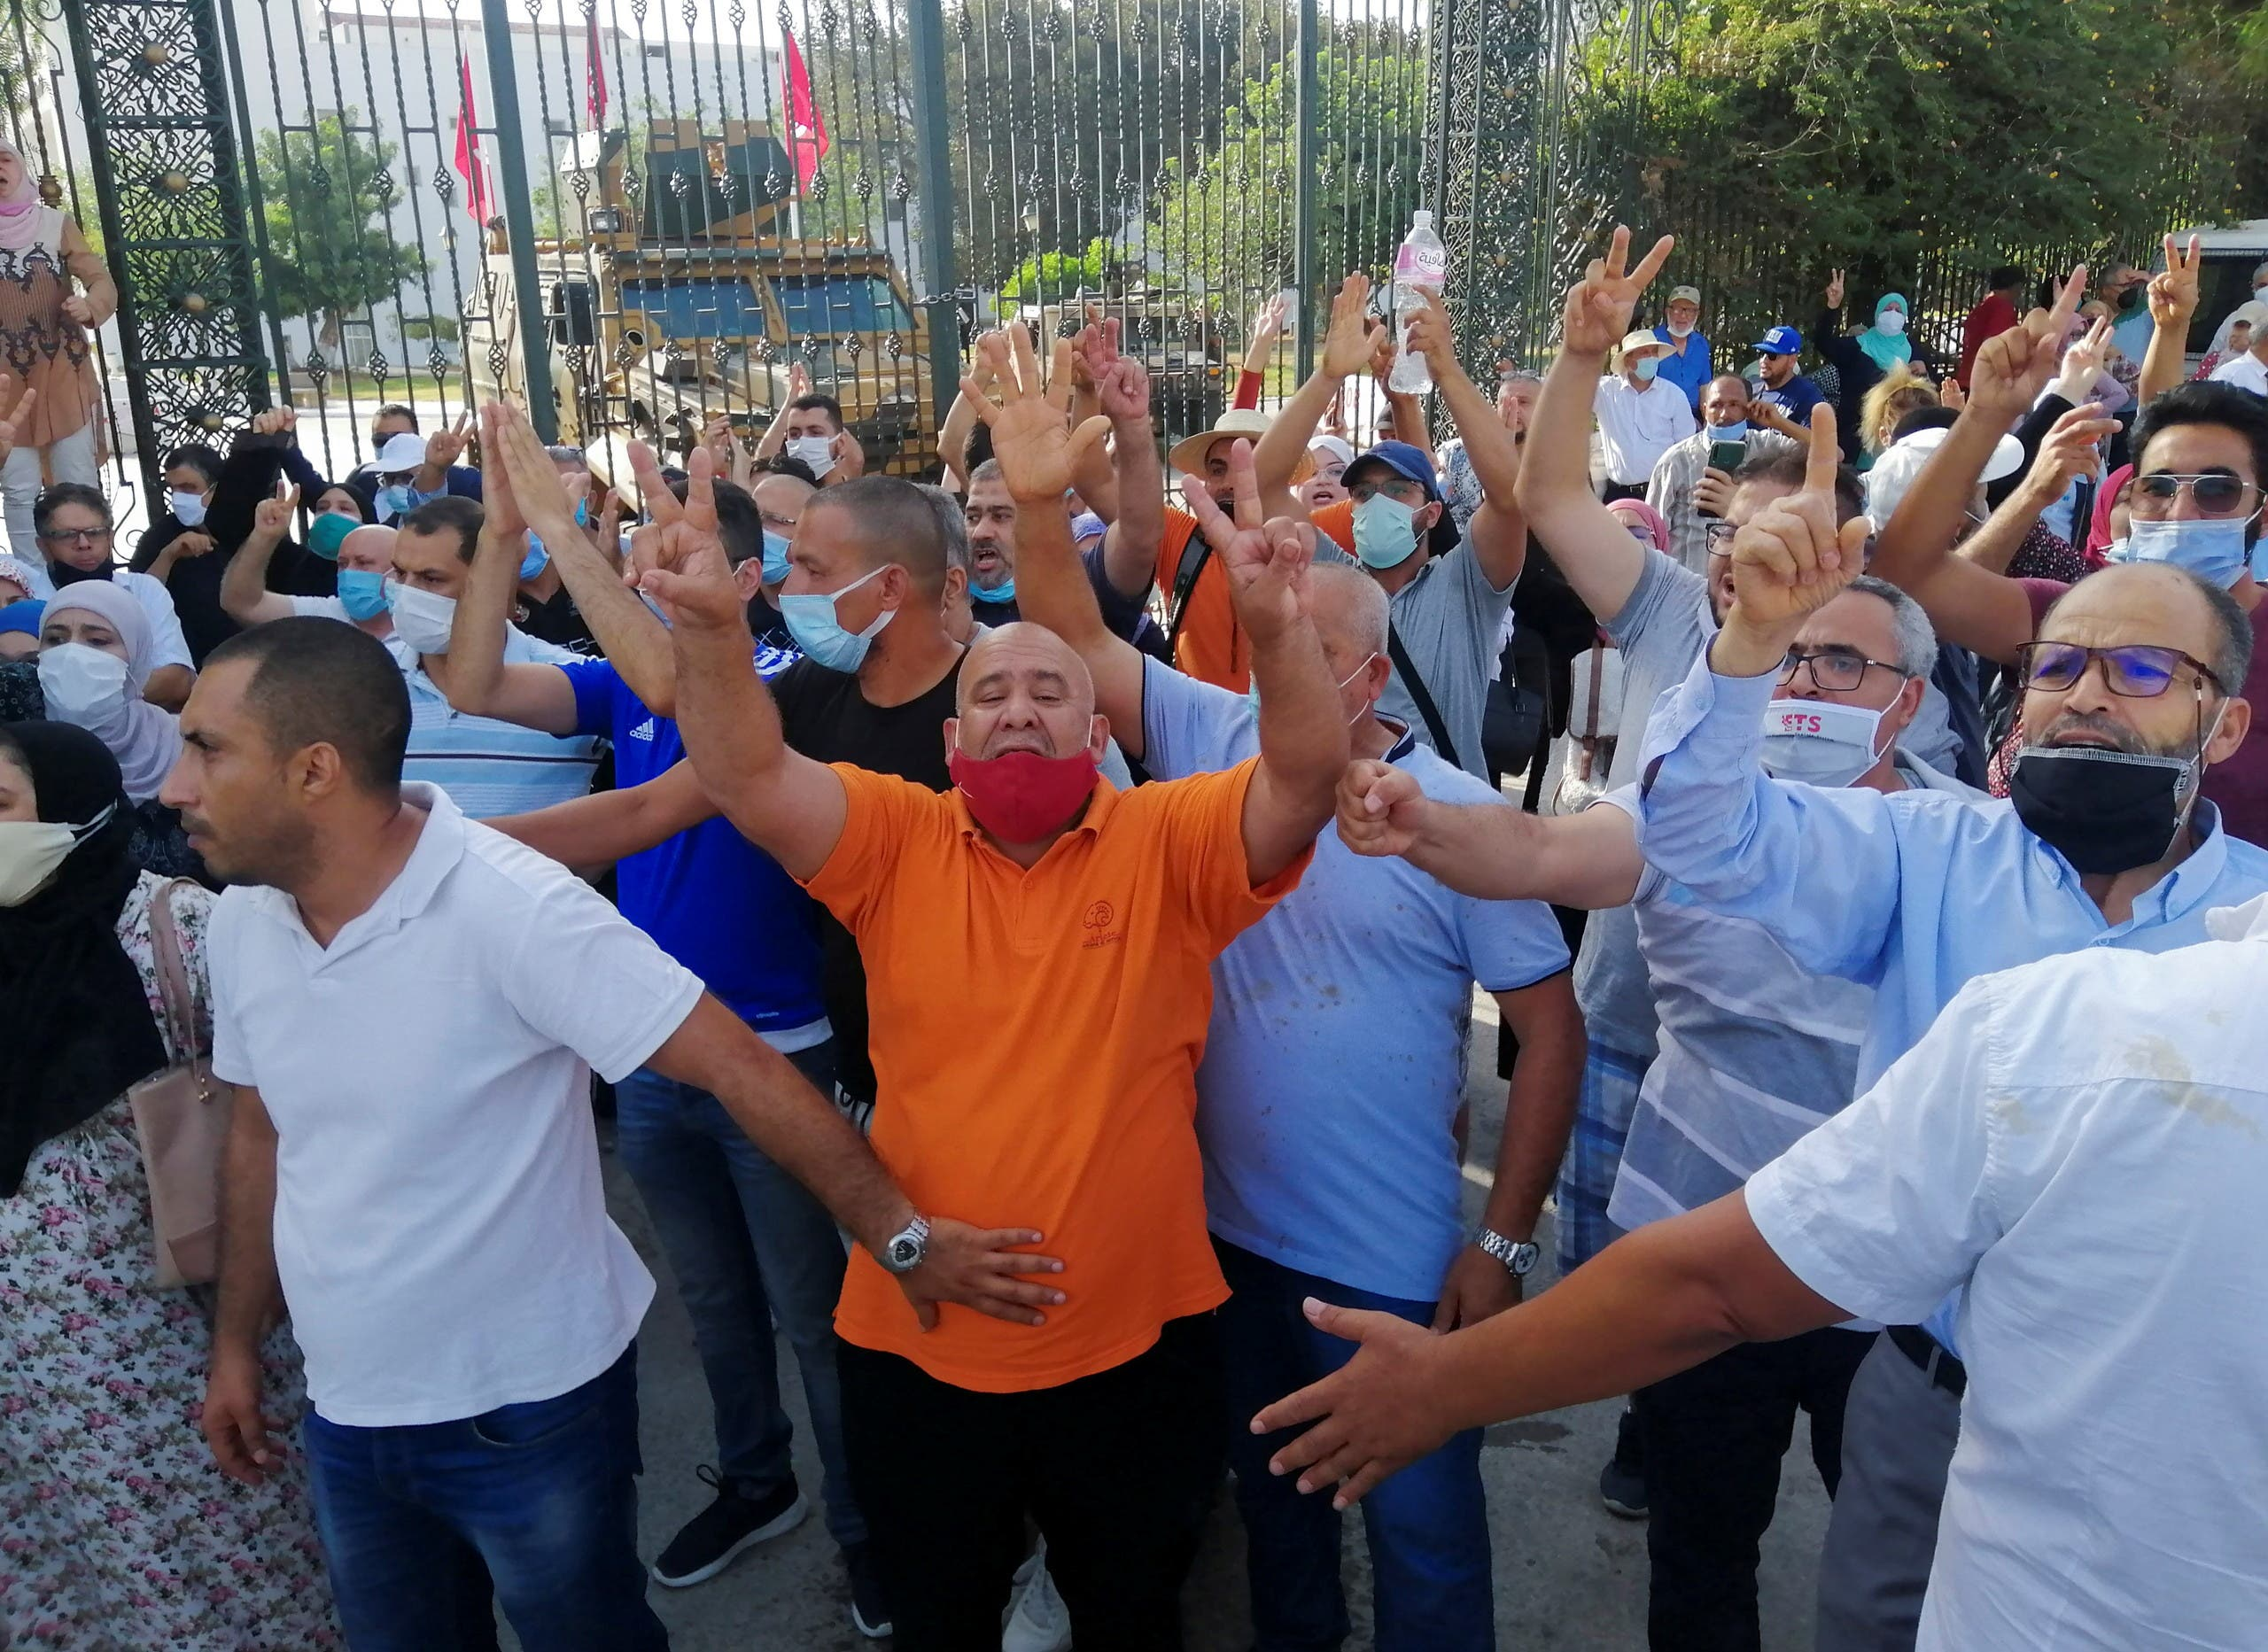 Stones were thrown at Ghannouchi's convoy in front of the Tunisian Parliament